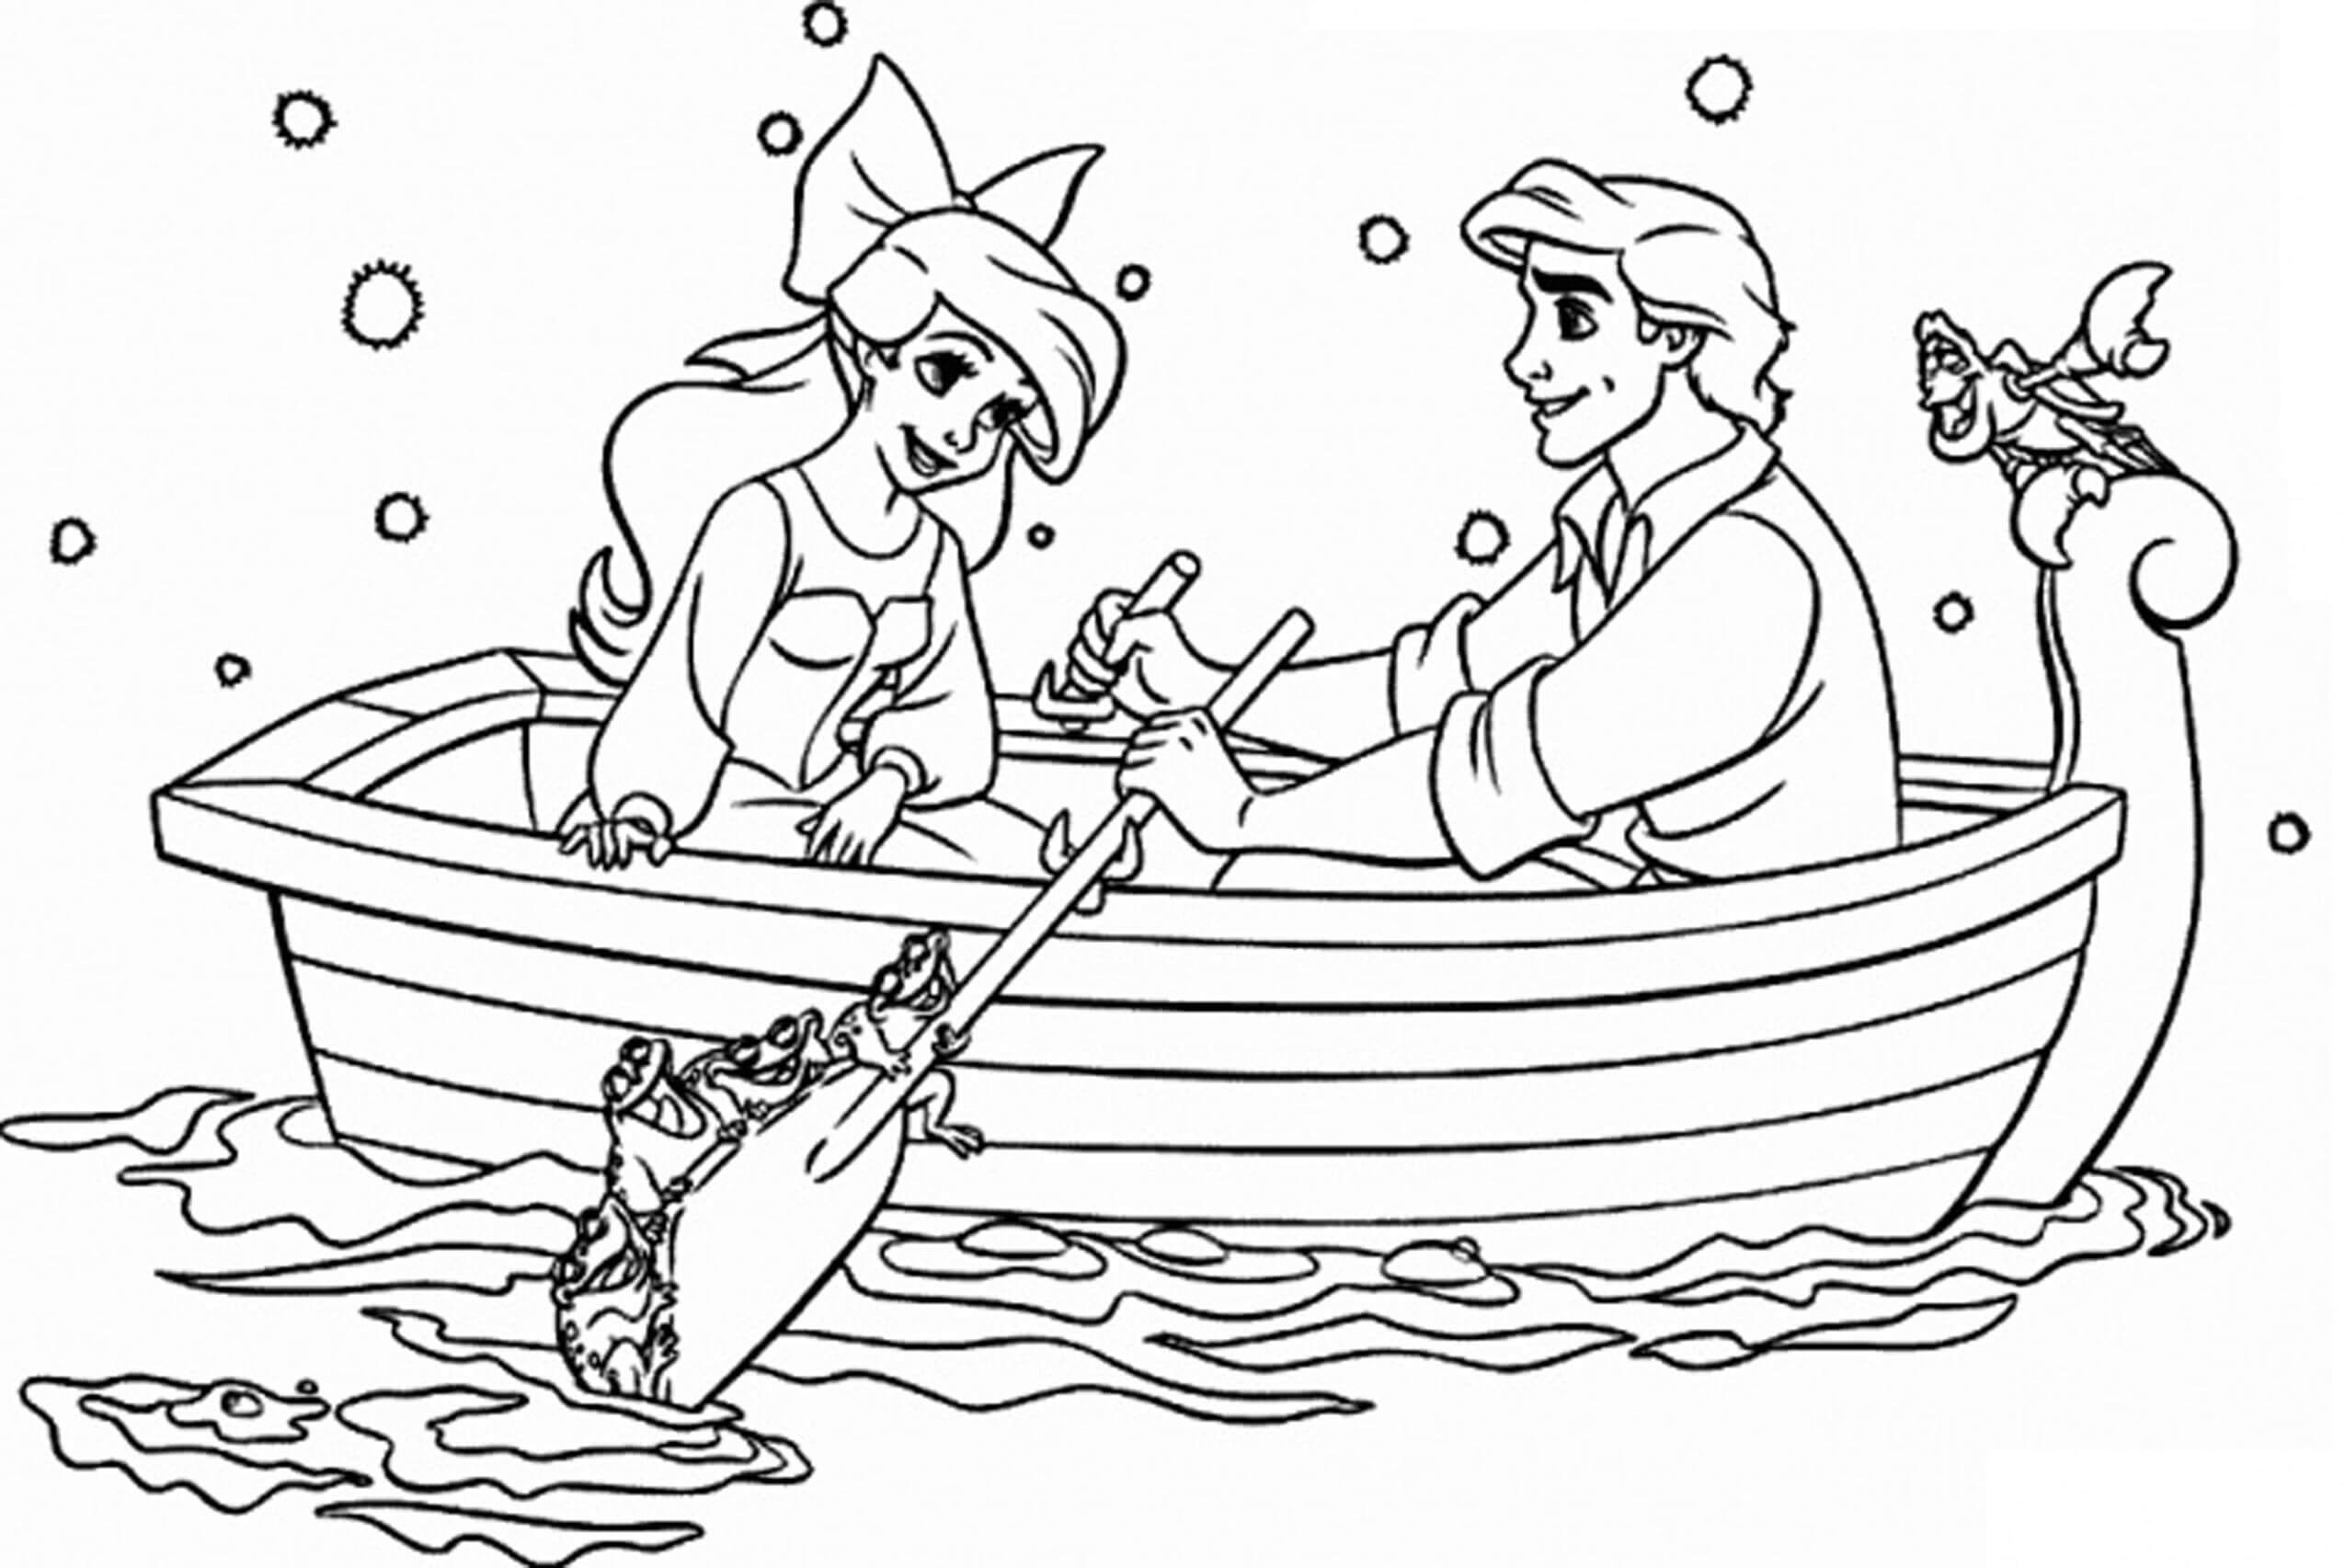 Coloring Pages Disney To Print  Coloring Home